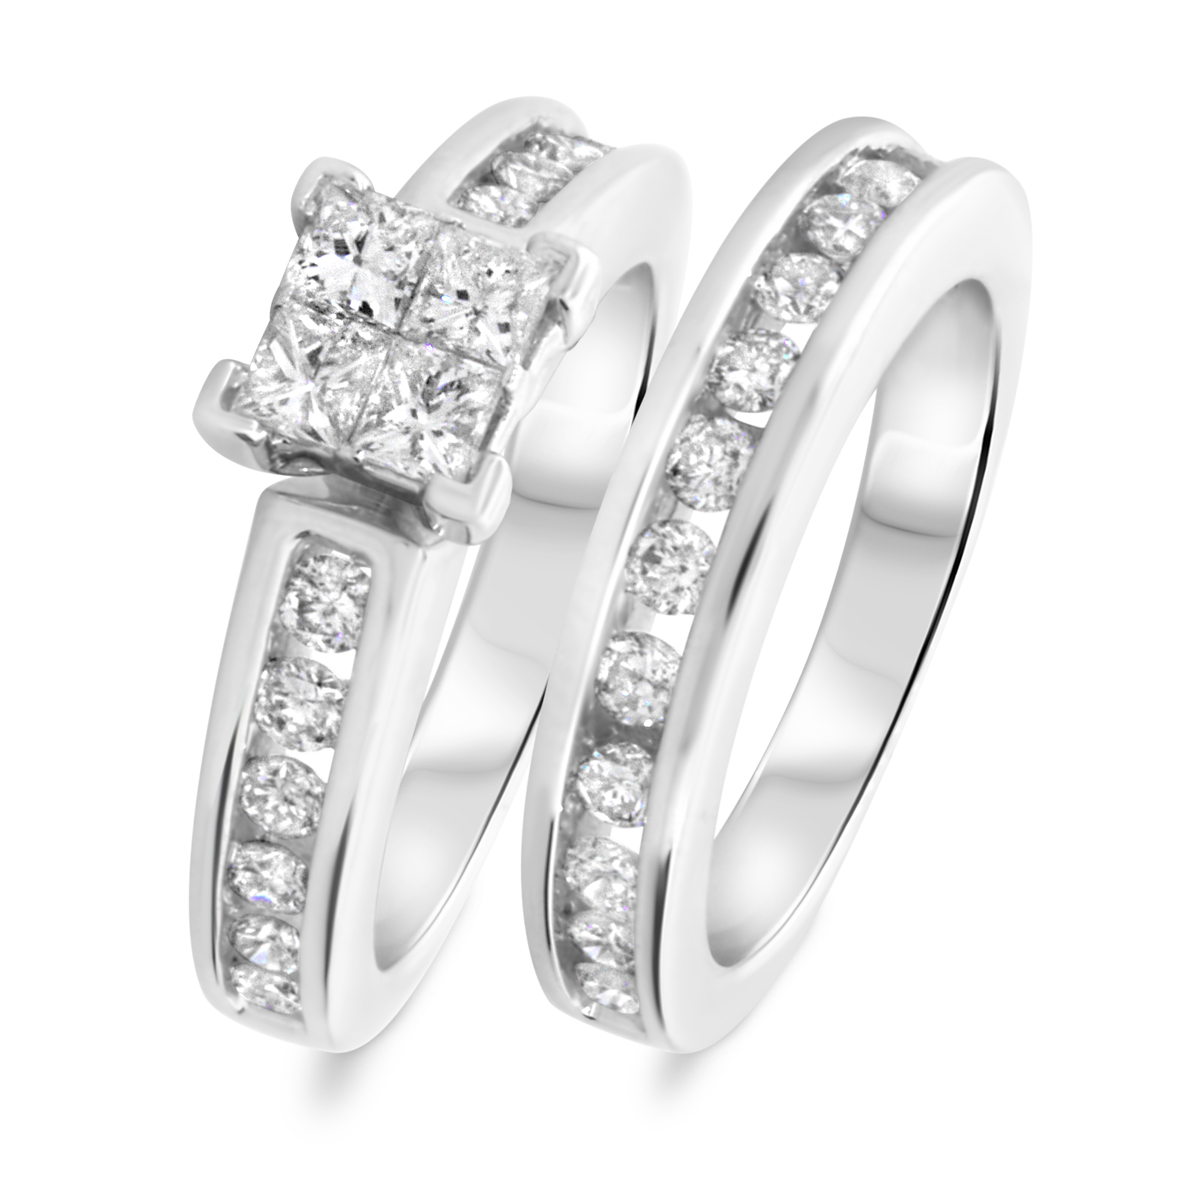 1 1/2 CT. T.W. Princess, Round Cut Diamond Ladies Bridal Wedding Ring Set 10K White Gold